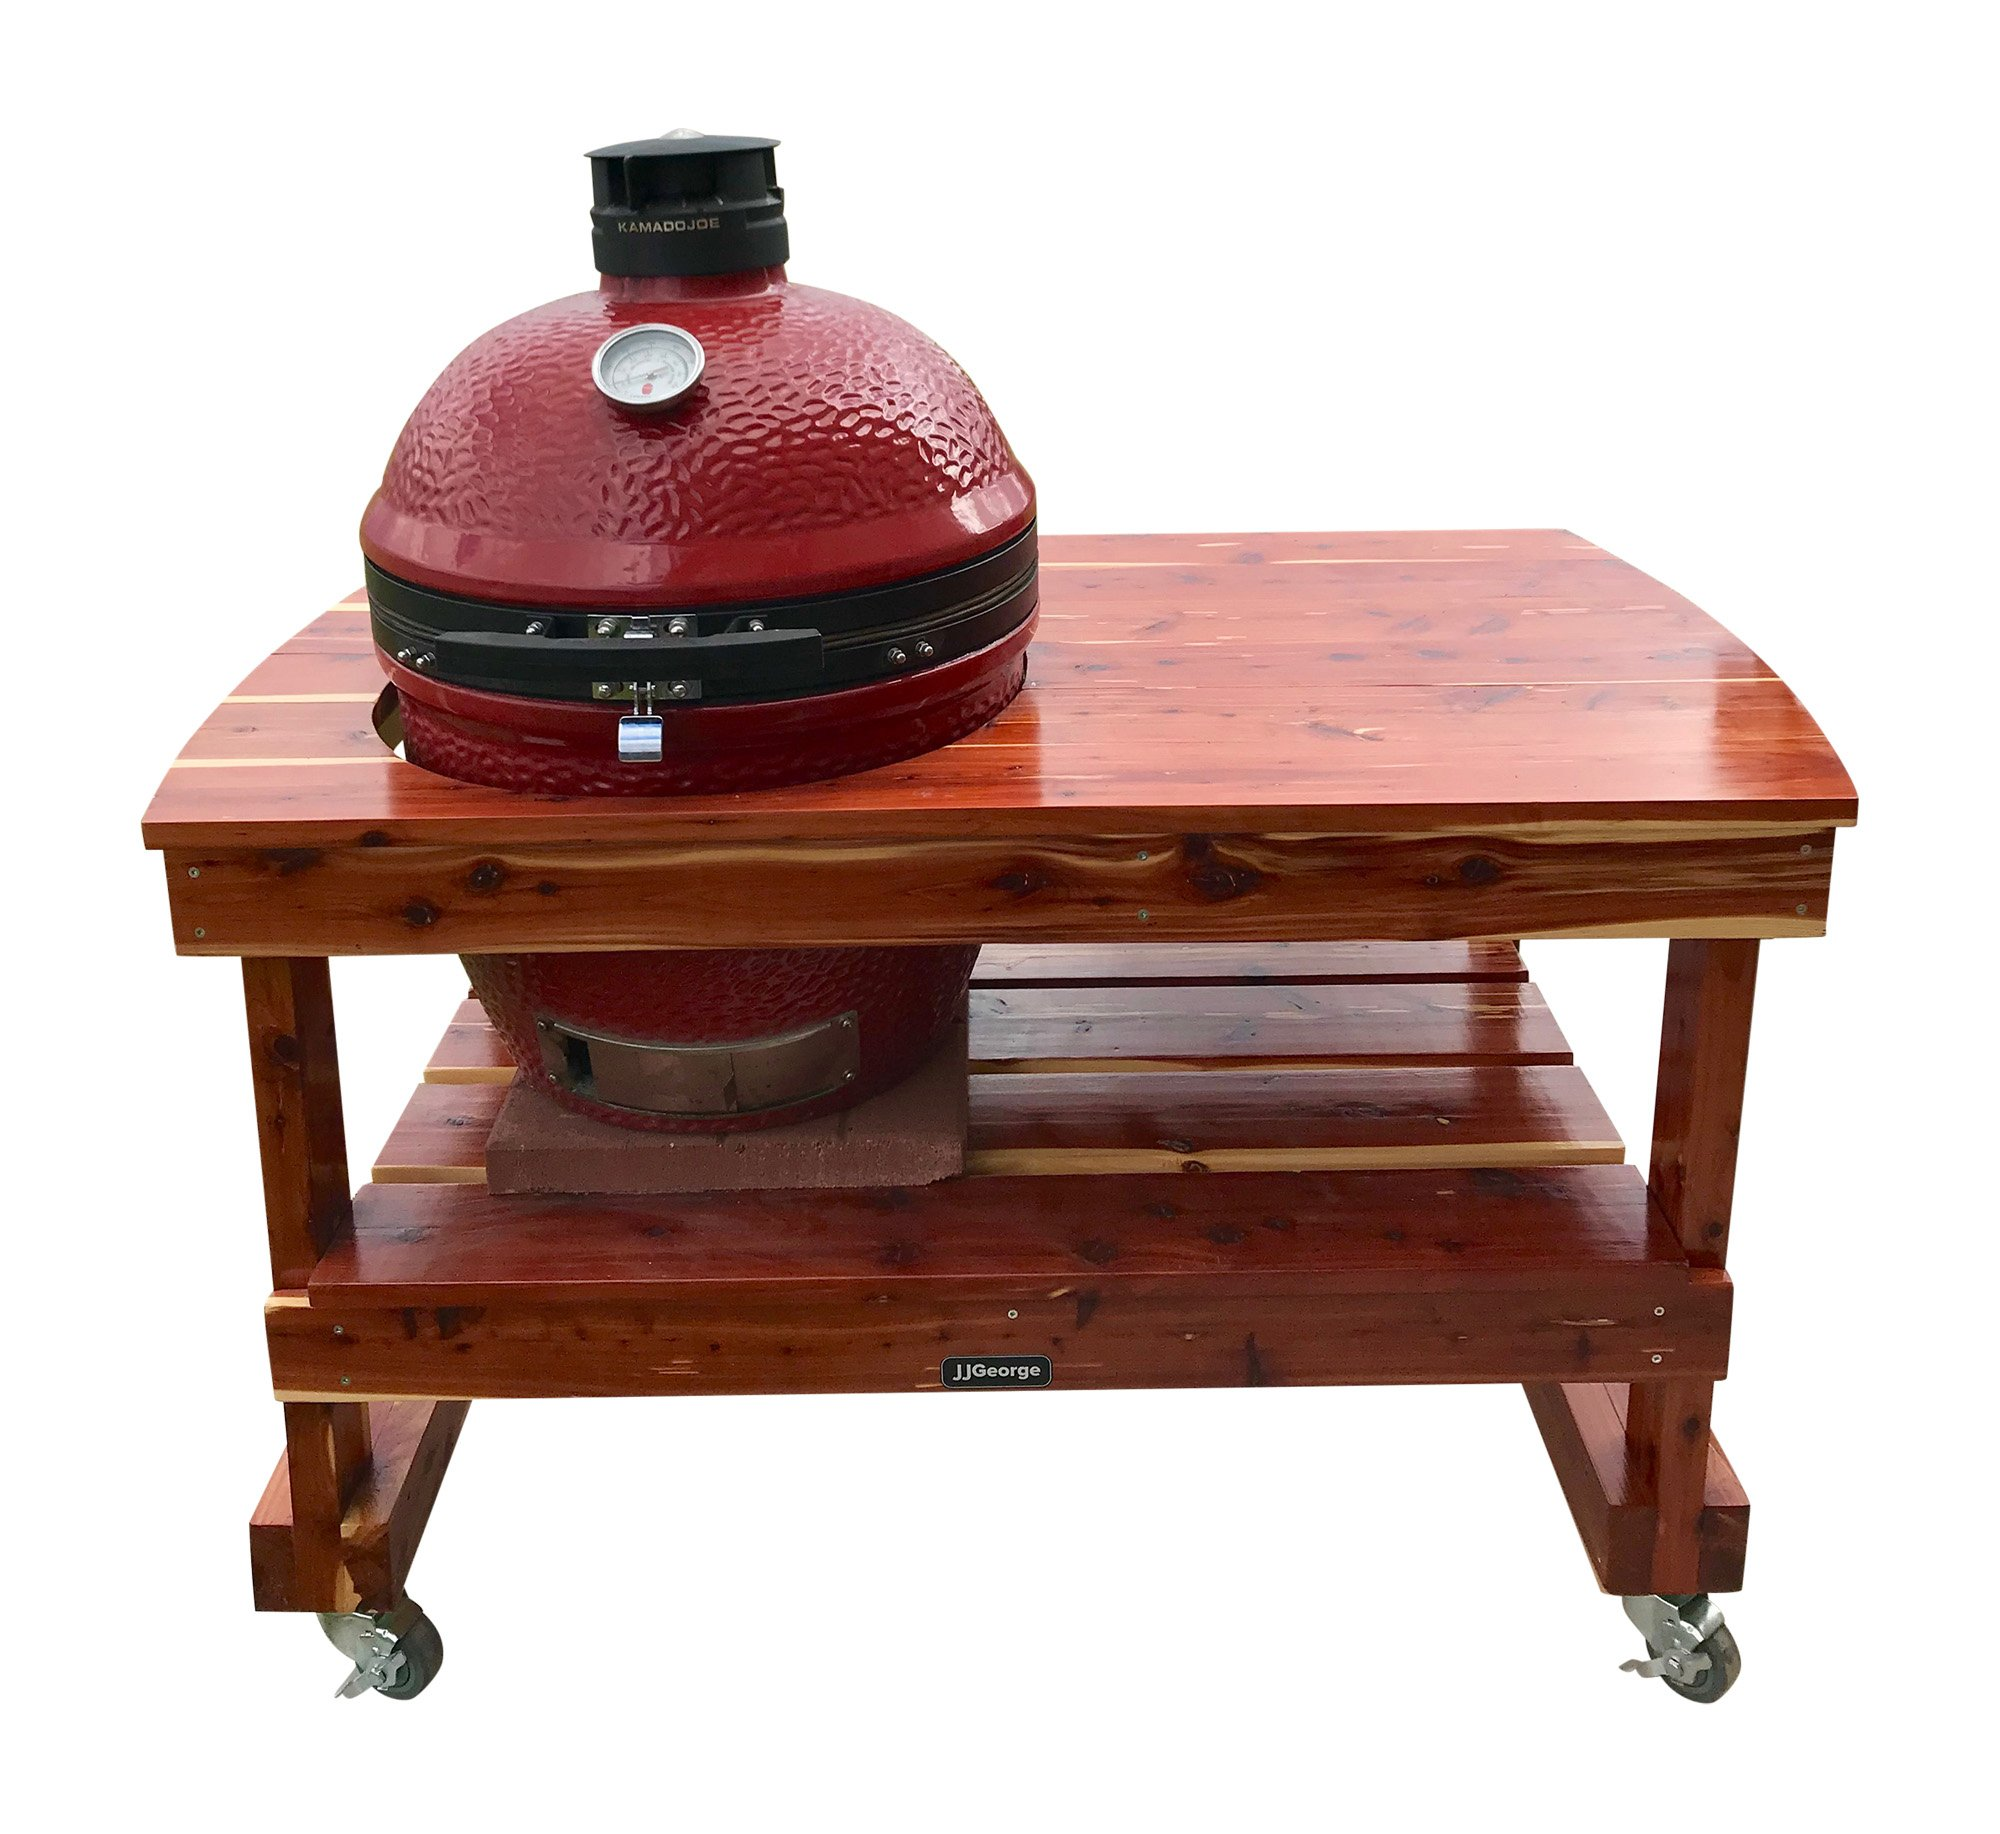 JJ George Grill Table for Classic Kamado Joe II